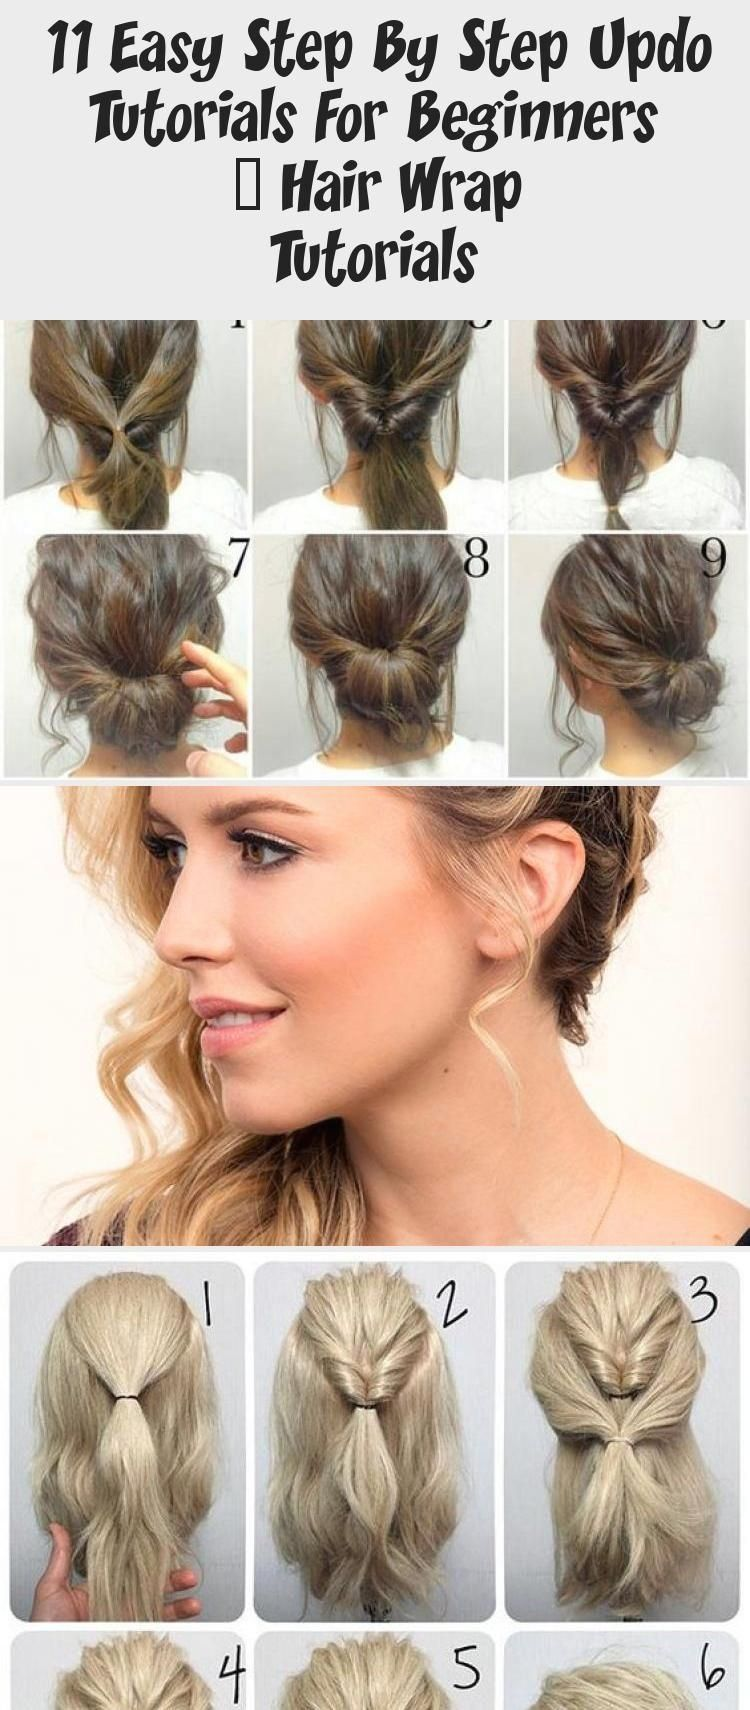 11 Easy Step By Step Updo Tutorials For Beginners Hair Wrap Tutorials Hair Styles Hair Style In 2020 Updo Tutorial Beach Waves Hair Tutorial Pinup Hair Tutorial